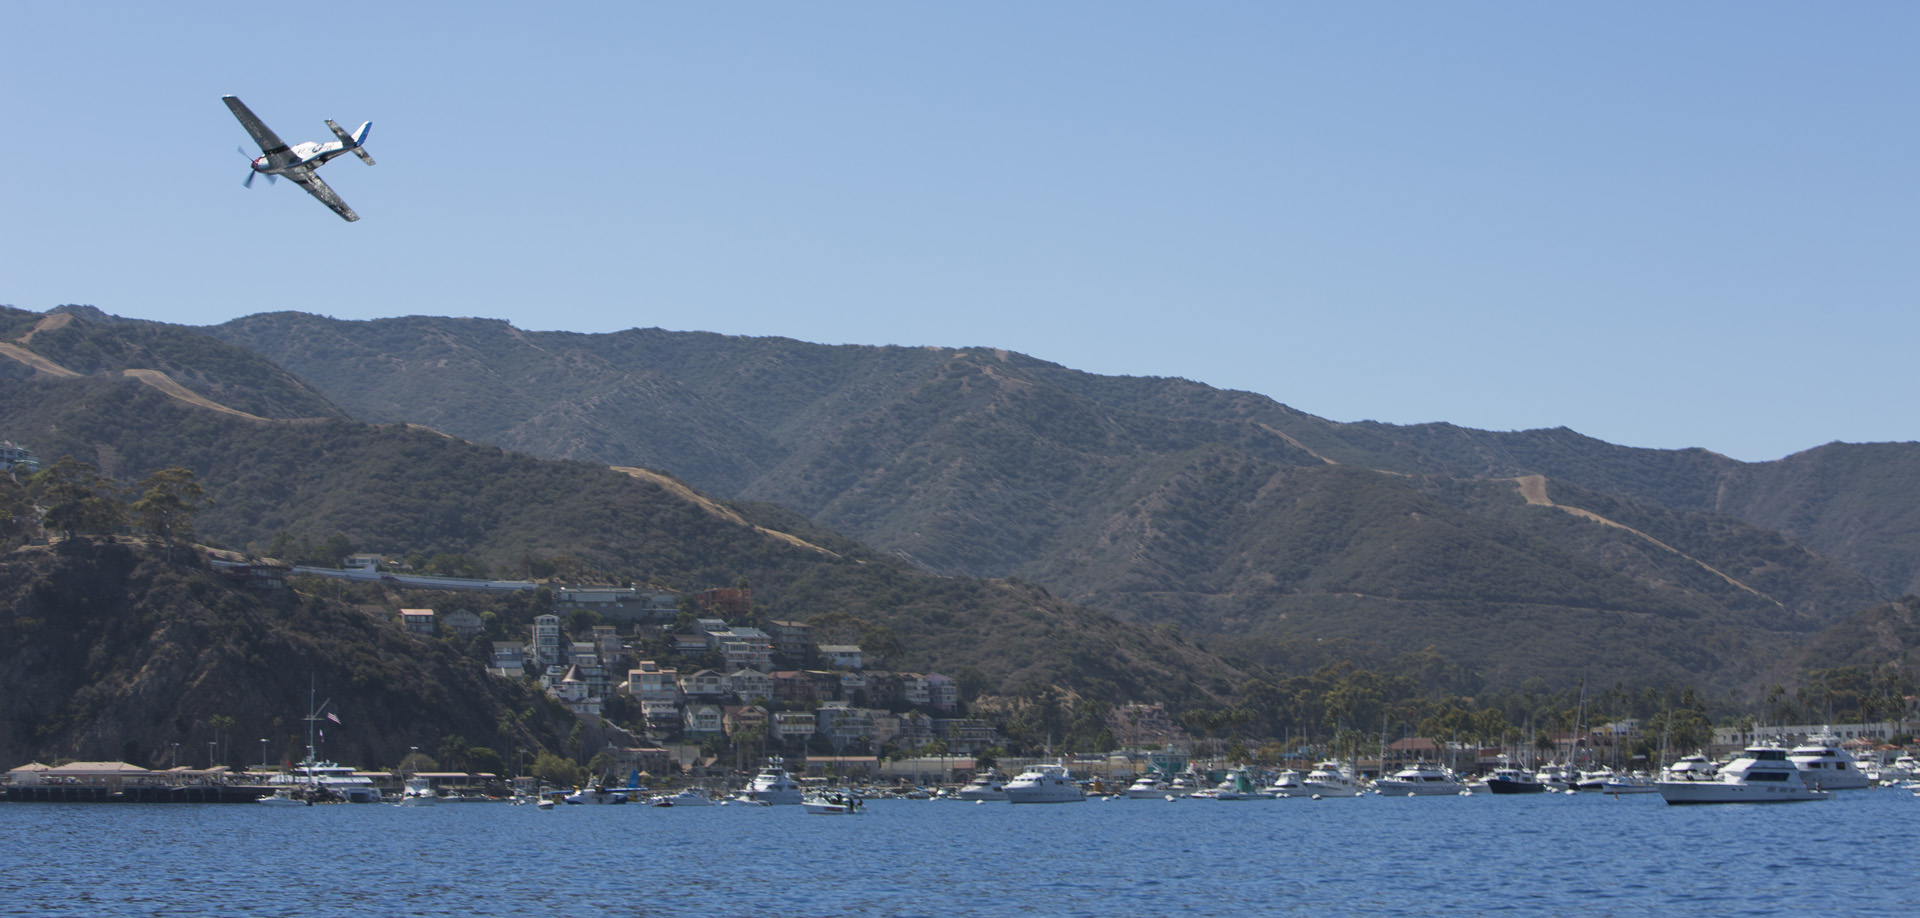 Water Taxi To Catalina Island From Long Beach